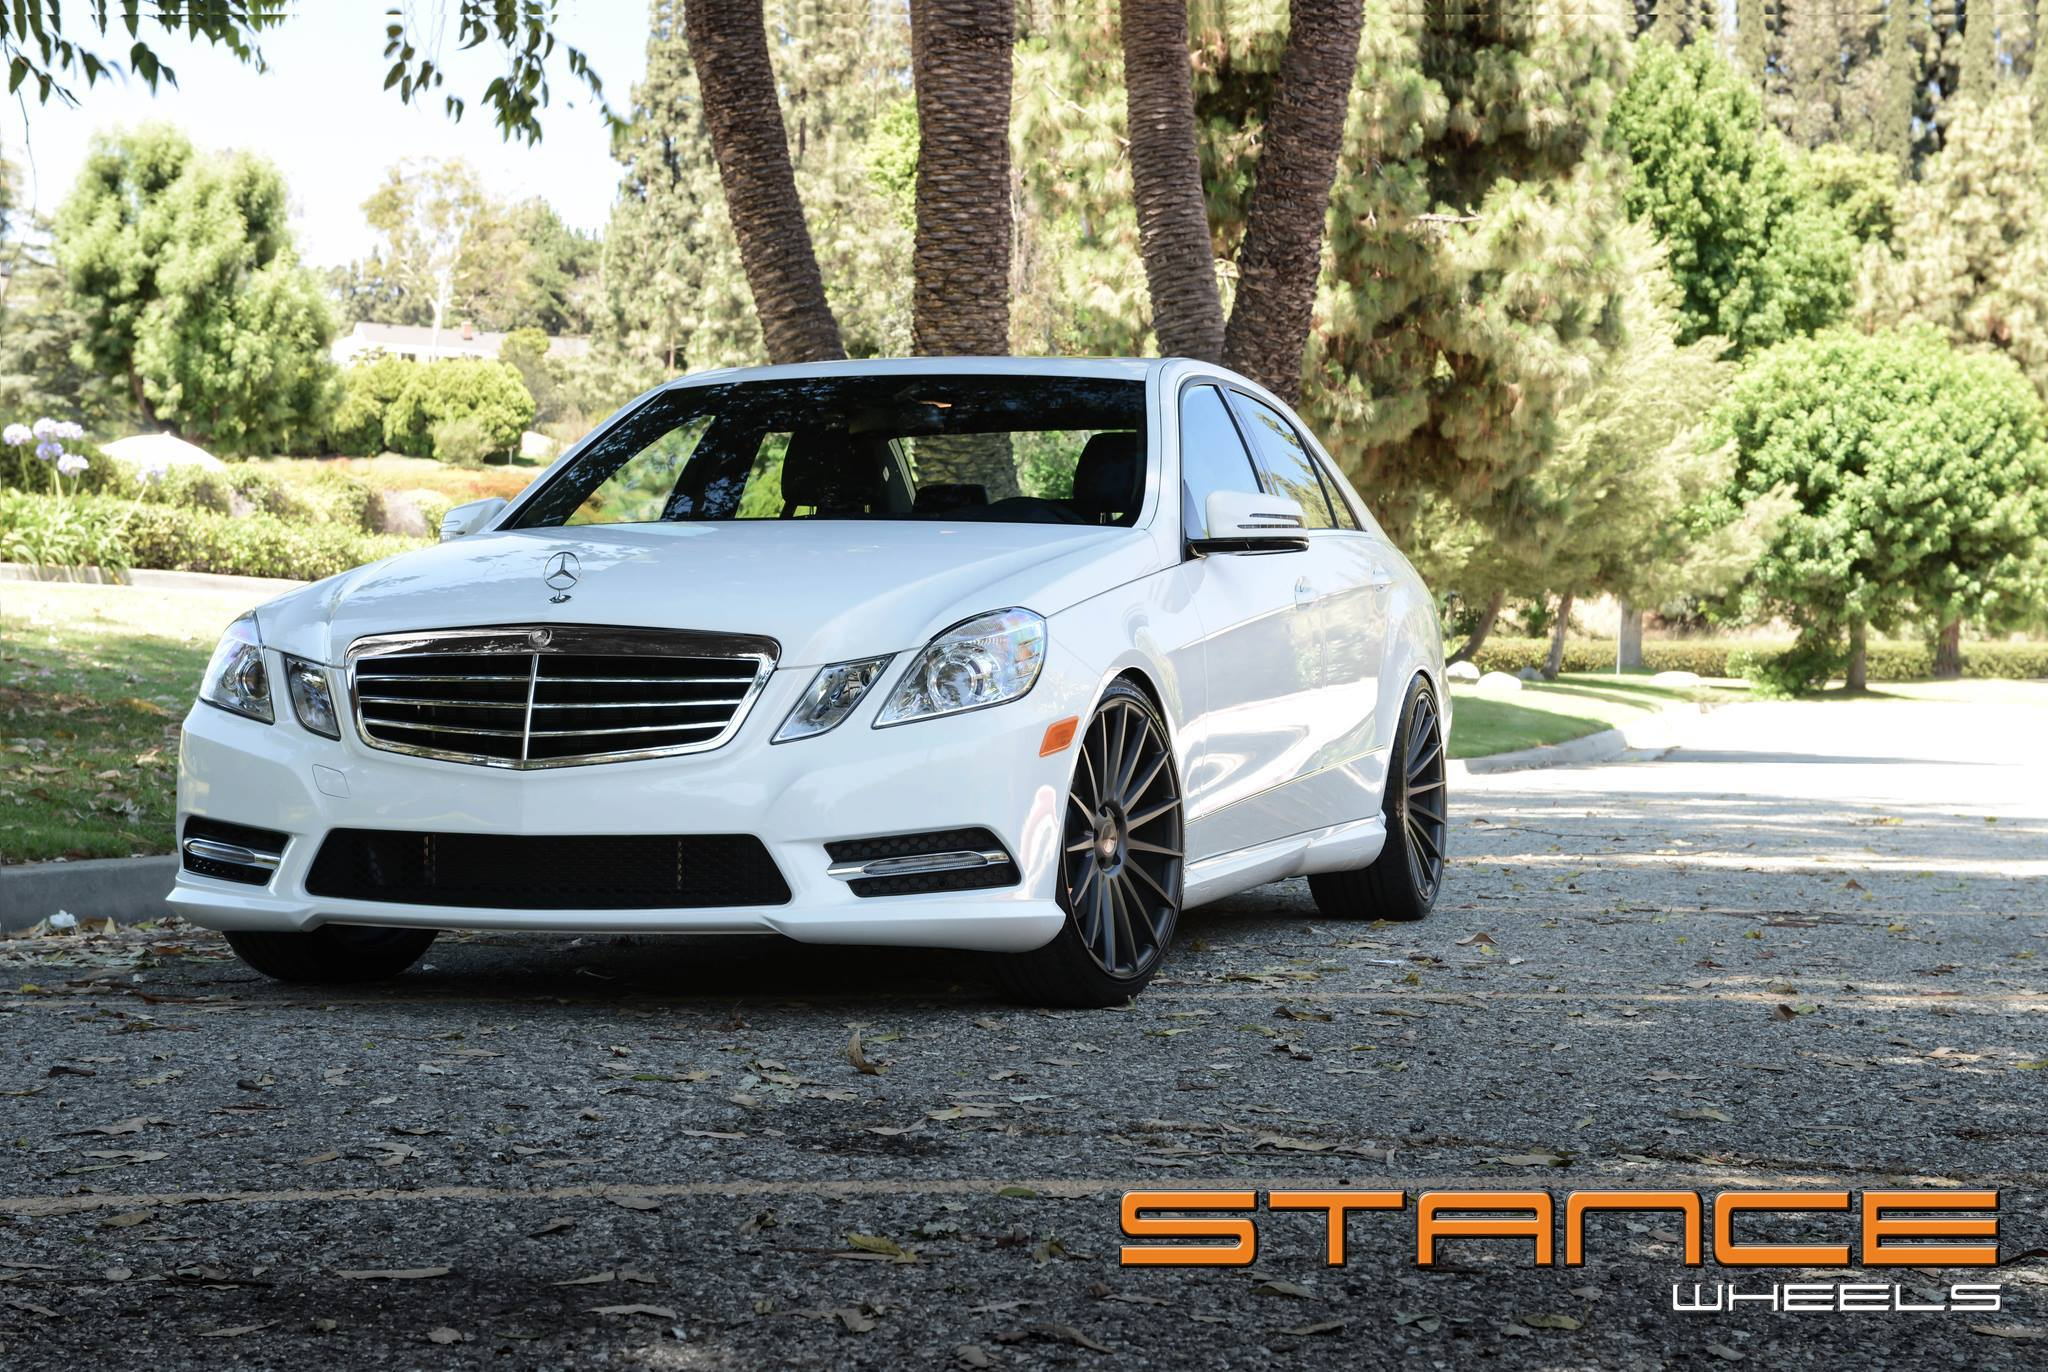 Stance Wheels SC-7 Slate Grey on Mercedes Benz E Class